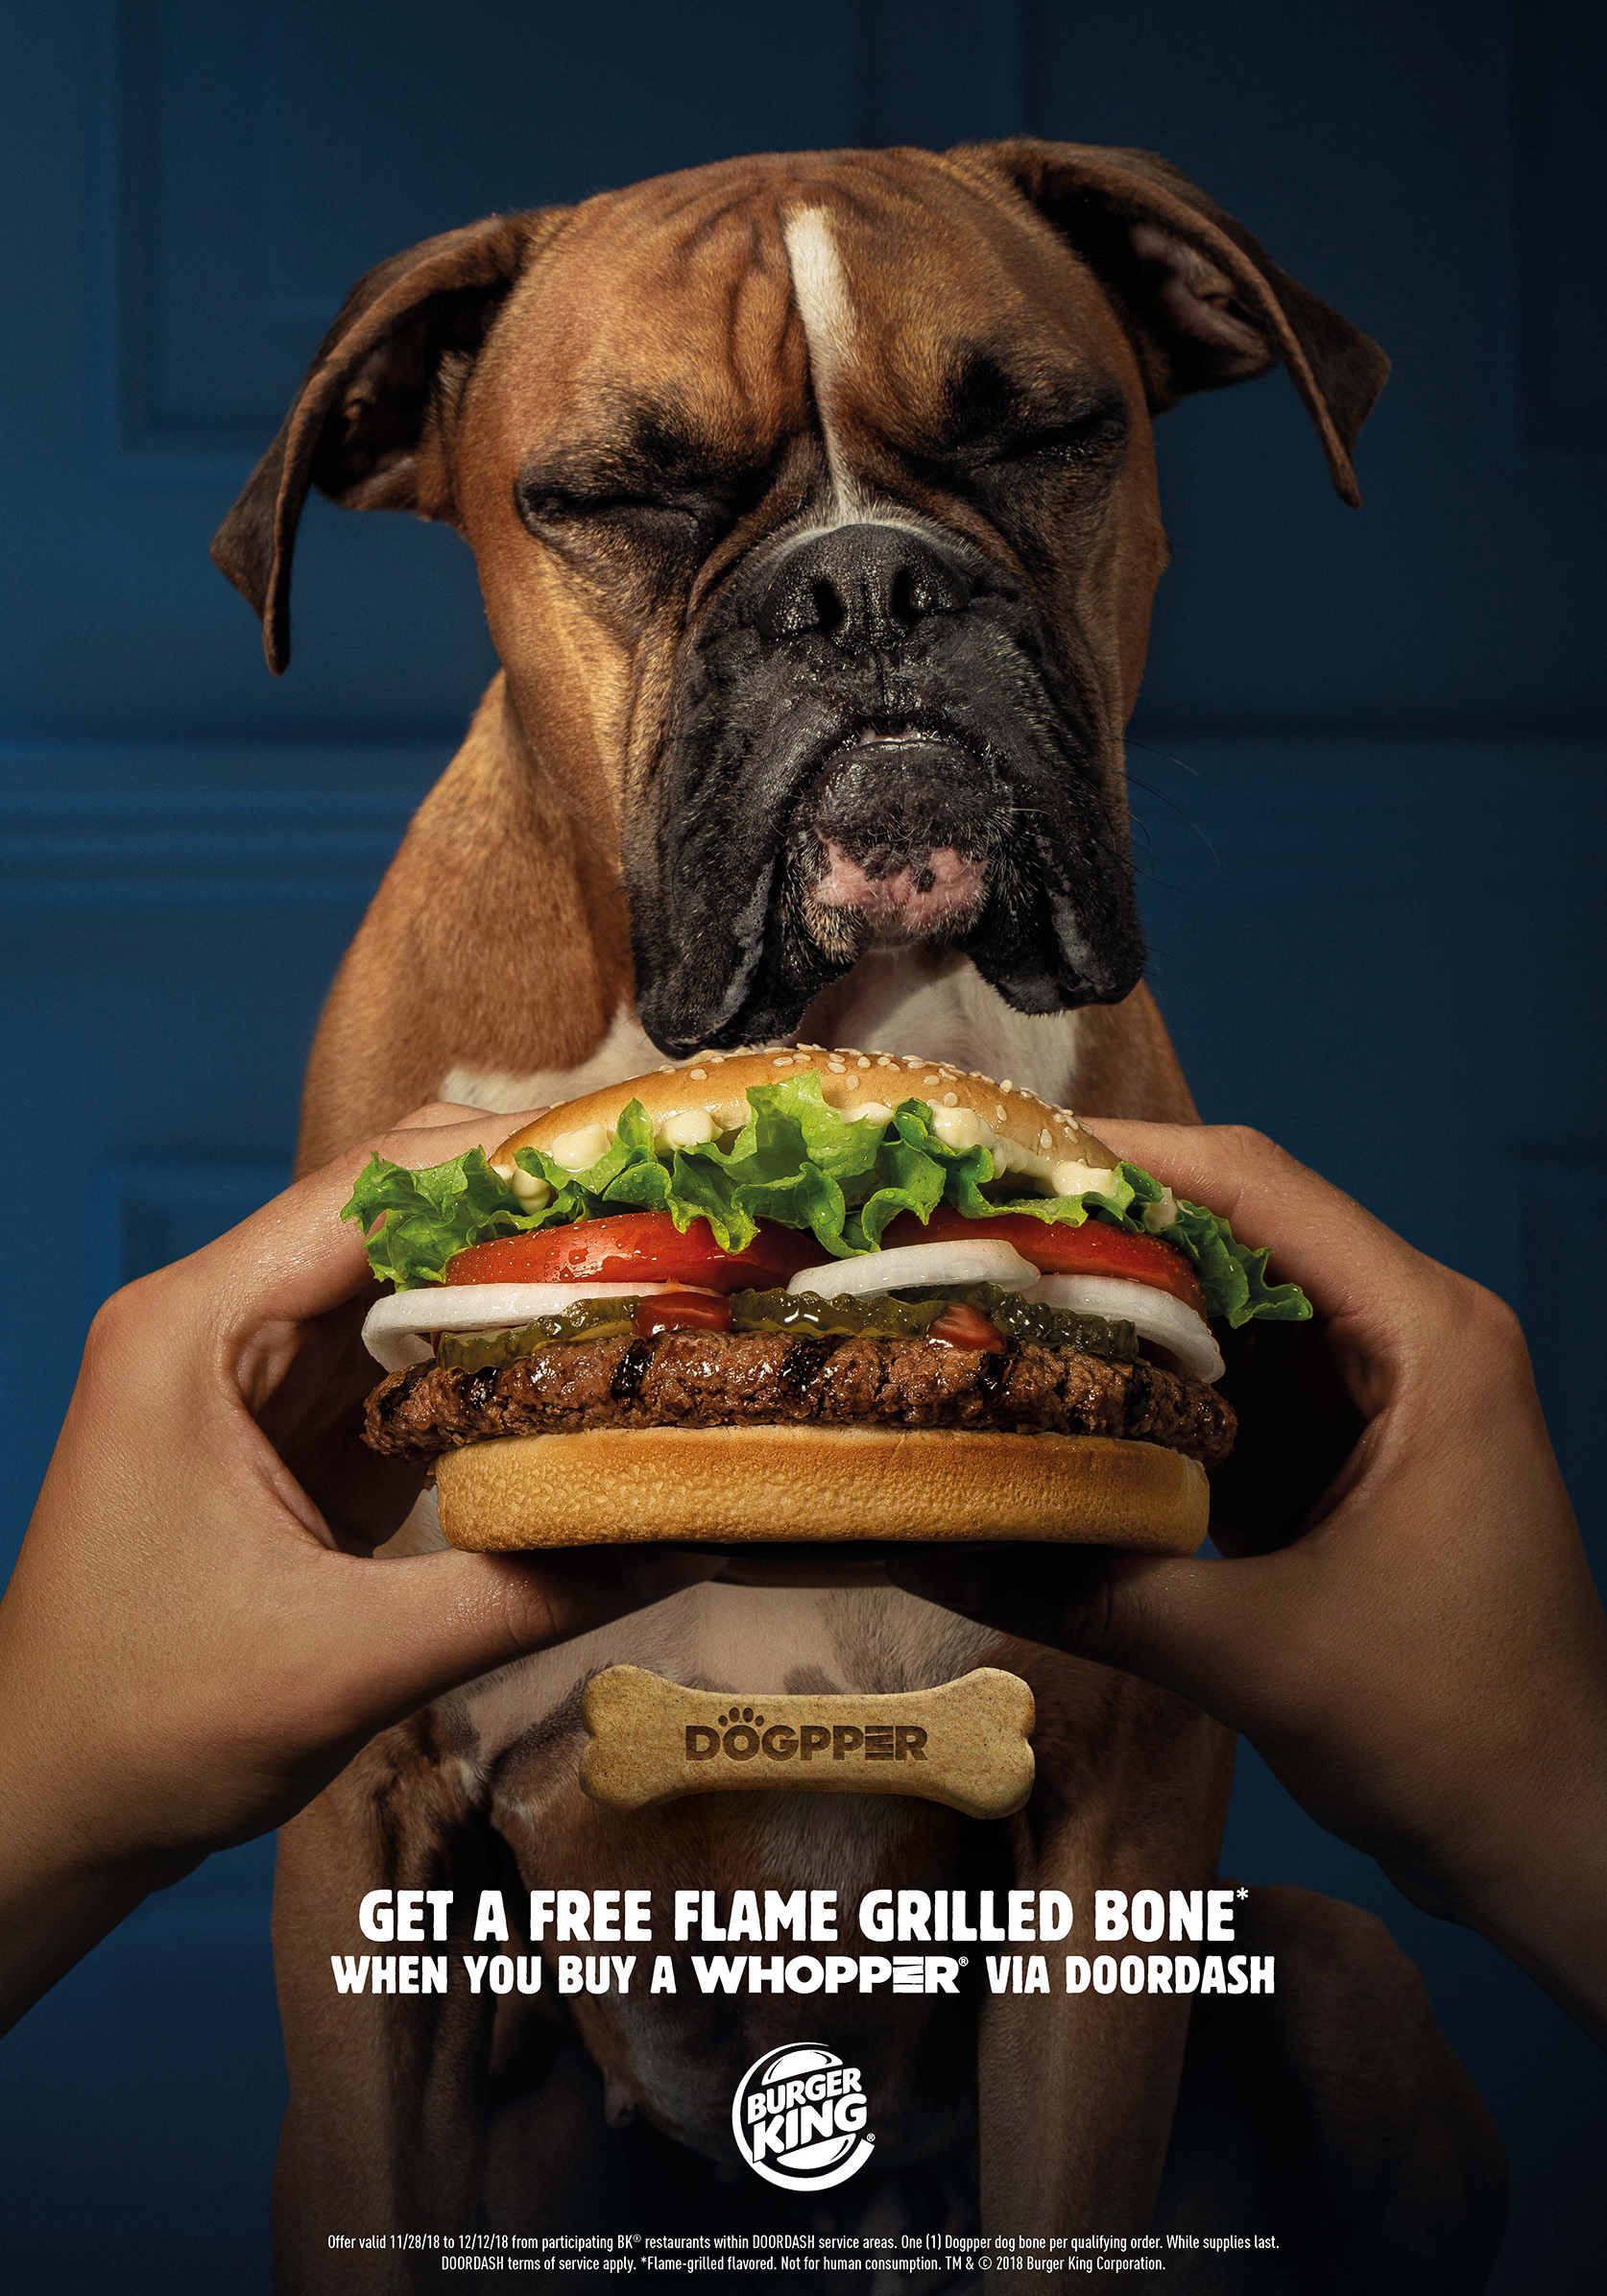 BURGER KING® Introduces the First Dog Bone Featuring Its